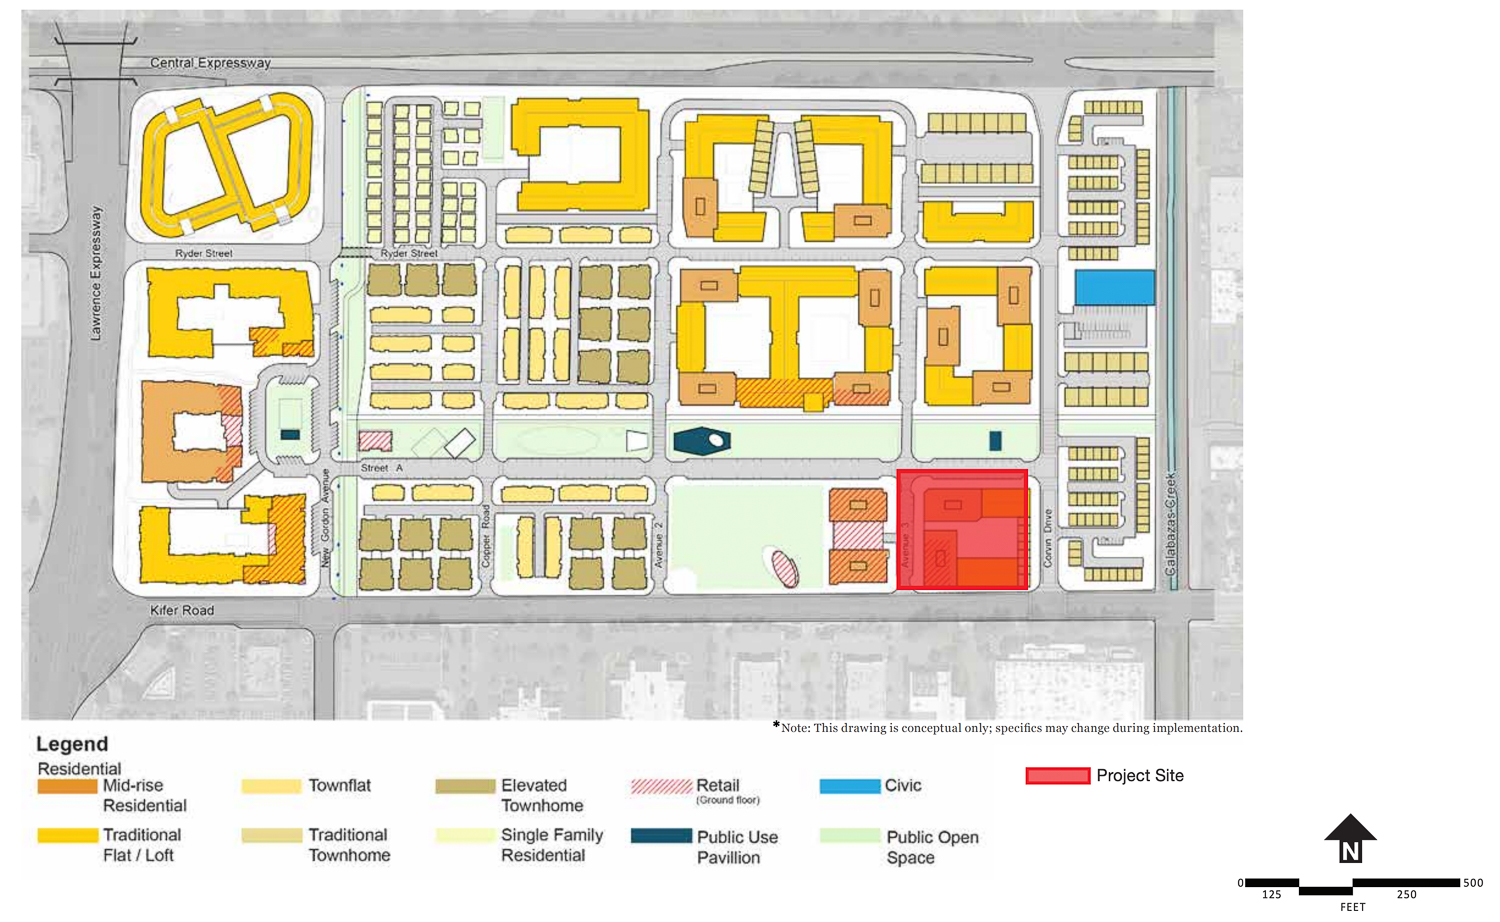 2904 Corvin Drive project site highlighted in red, illustration from the City of Santa Clara Lawrence Station Area Plan of 2016